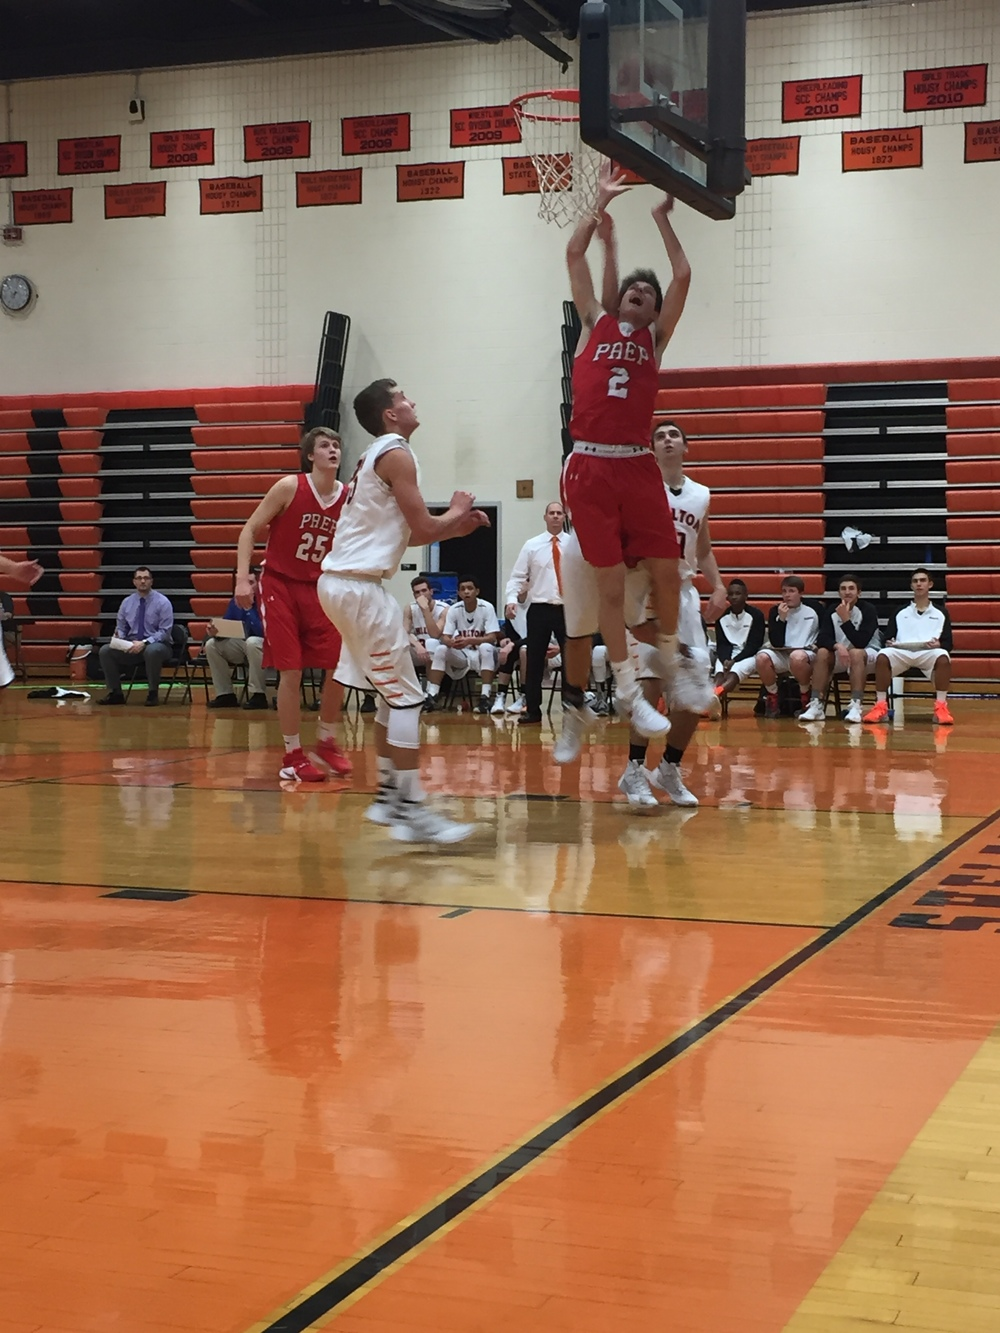 Junior guard Philip Vlandis of the Fairfield Prep Jesuits goes up for layup strong in the paint. Provided by: CTHoopsNews